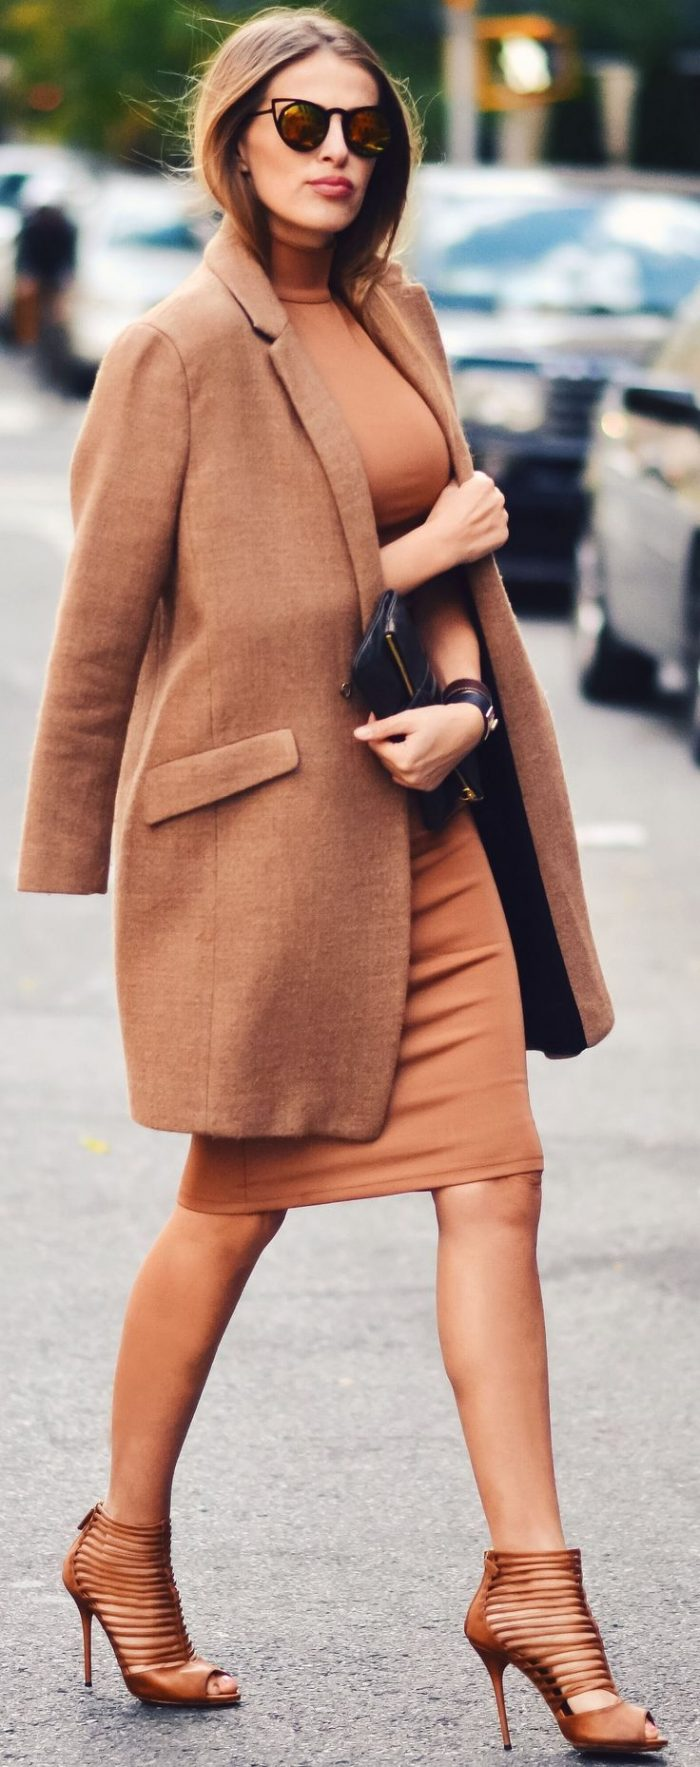 Monochromatic Outfits For Women 2019